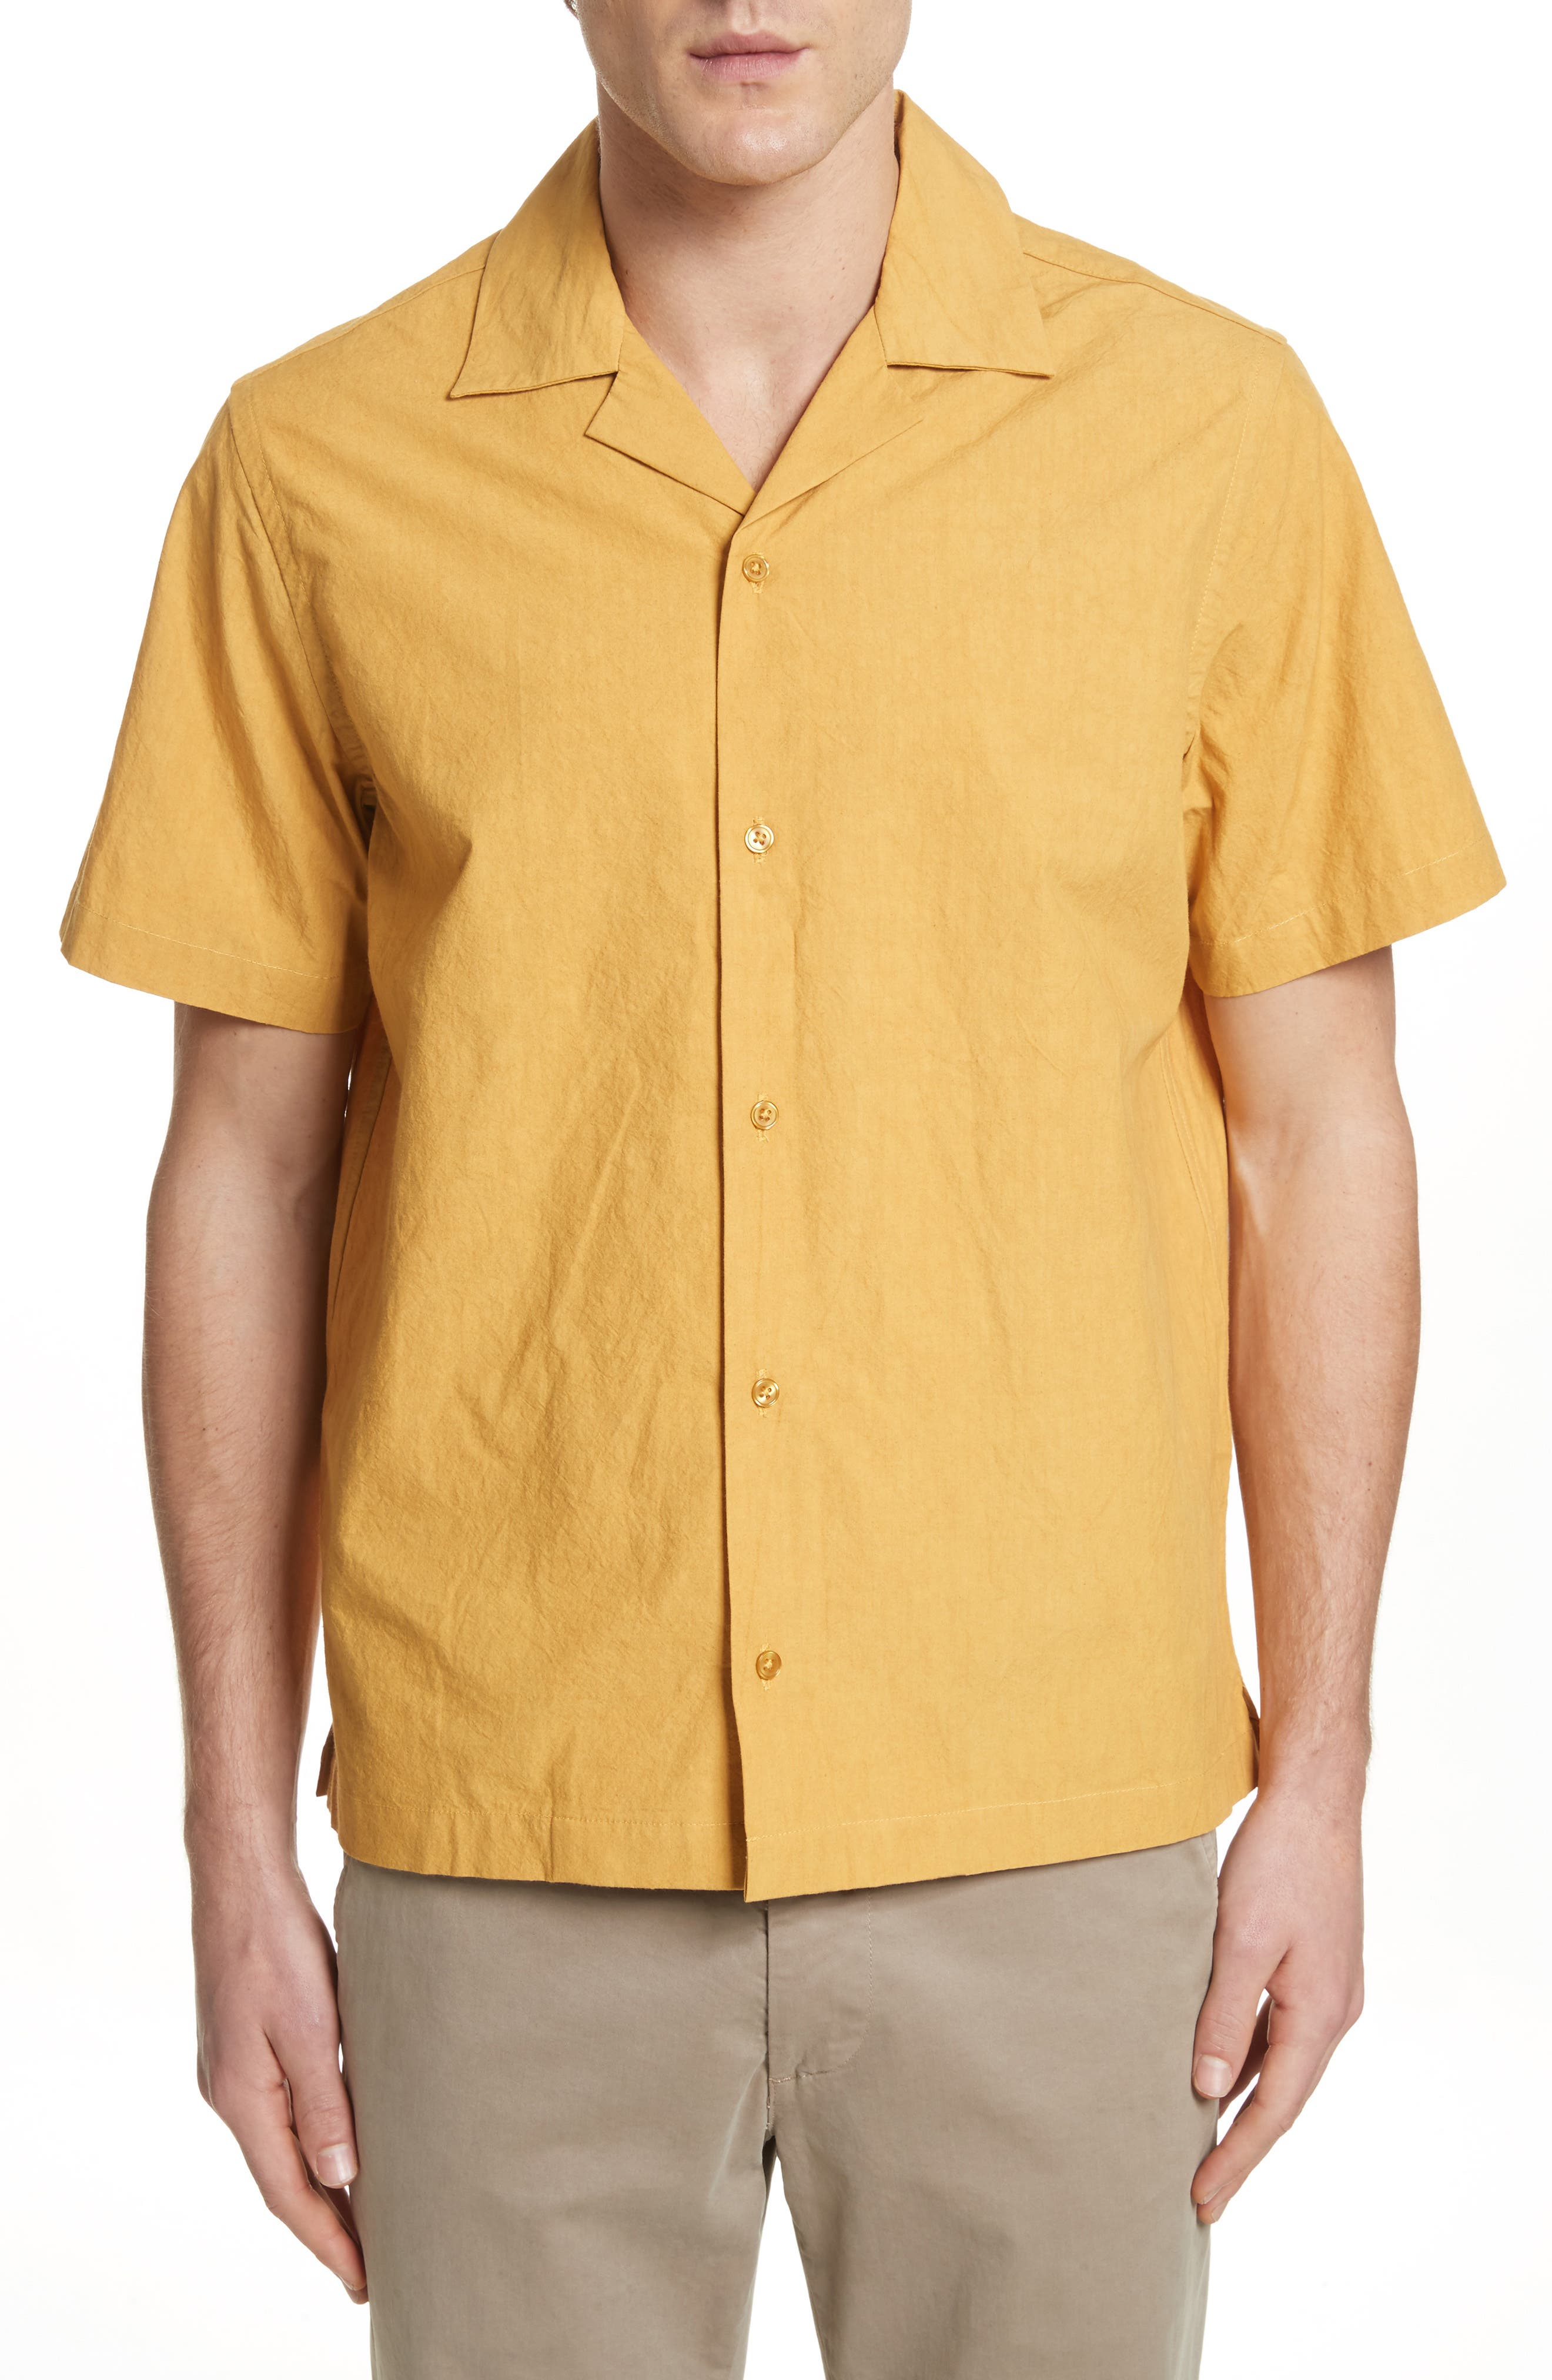 Canty Woven Camp Shirt,                             Main thumbnail 1, color,                             Dusty Amber